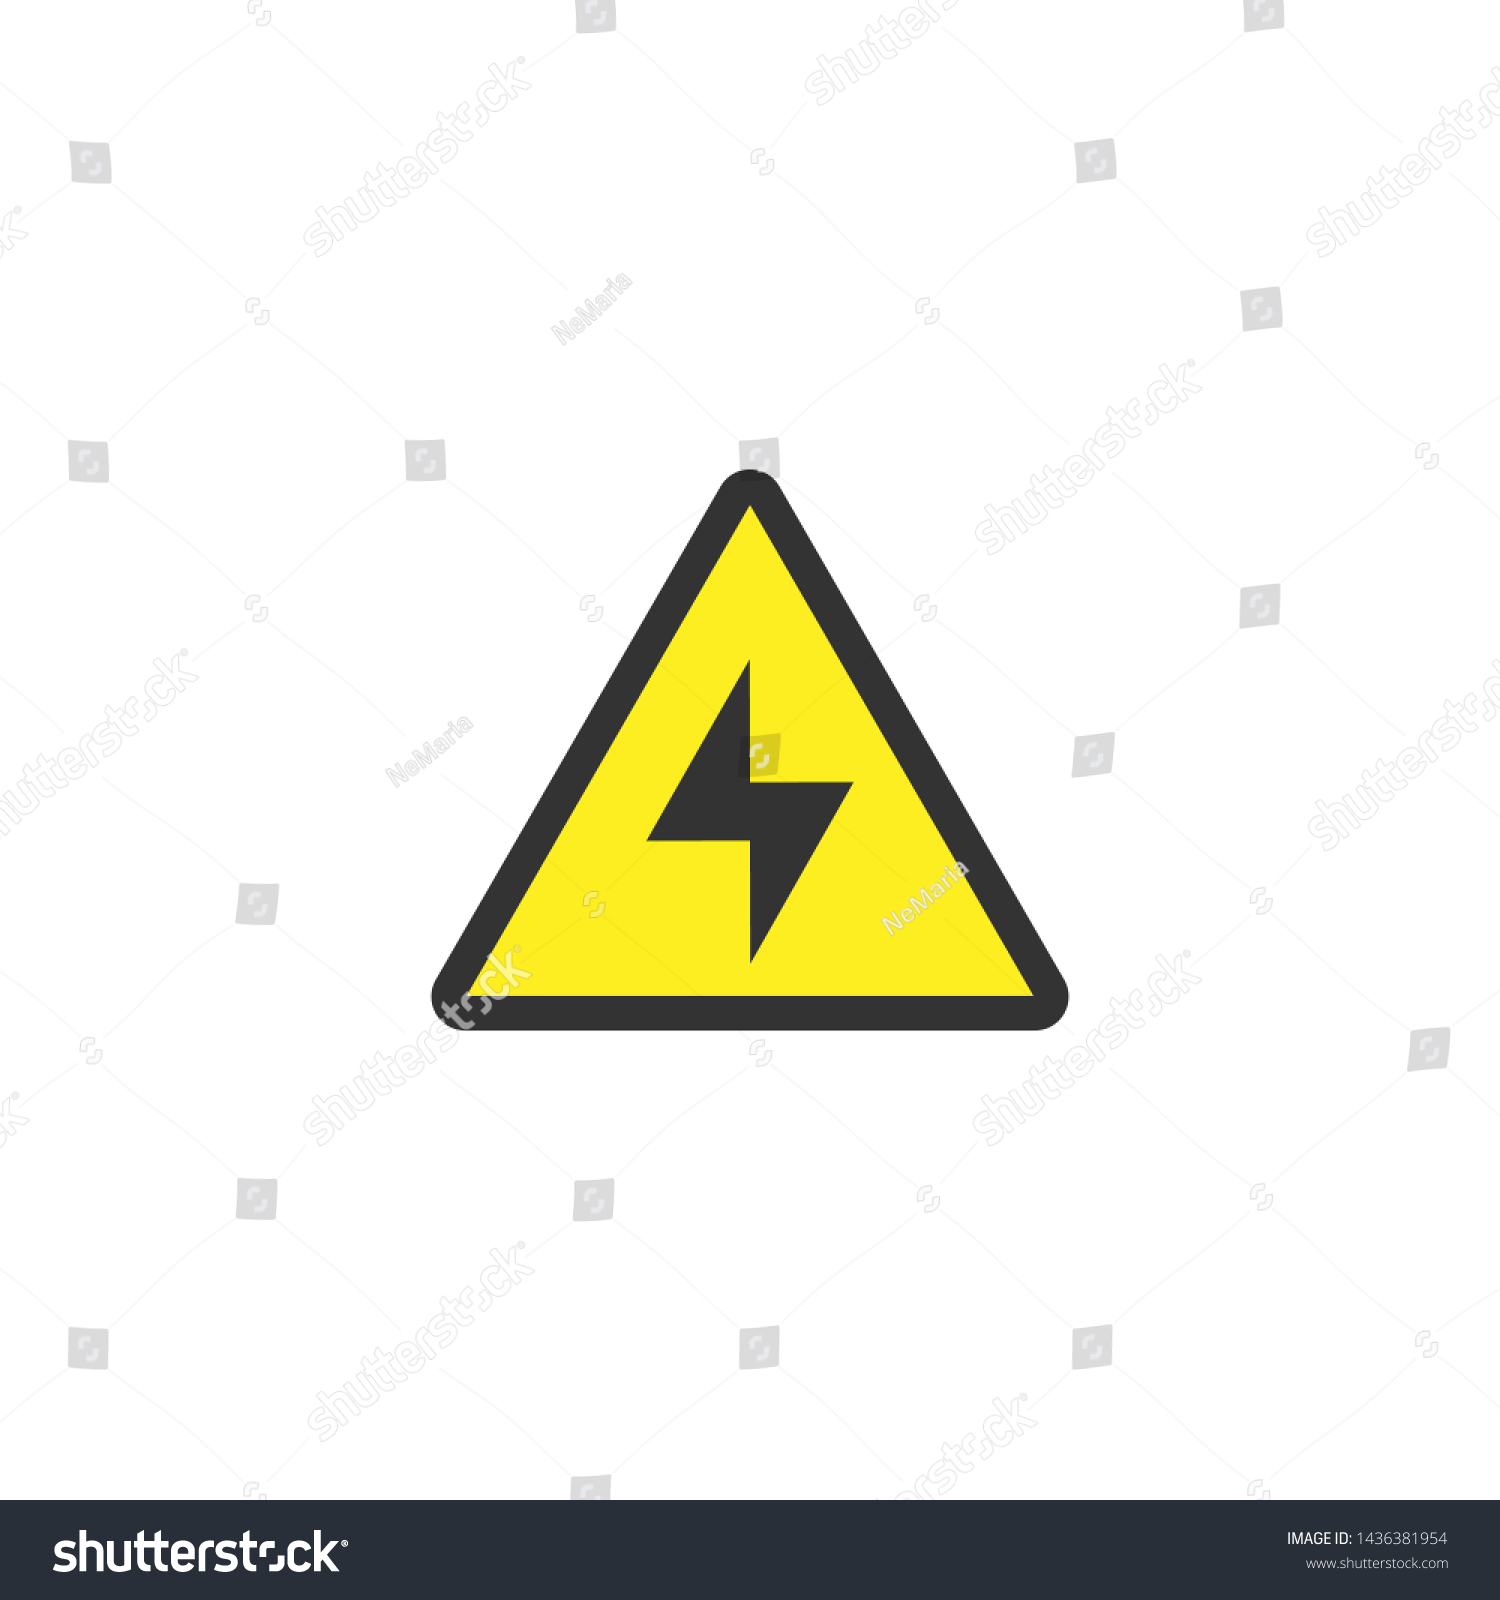 Black Lightning Bolt Yellow Triangle Warning Stock Vector Royalty Free 1436381954